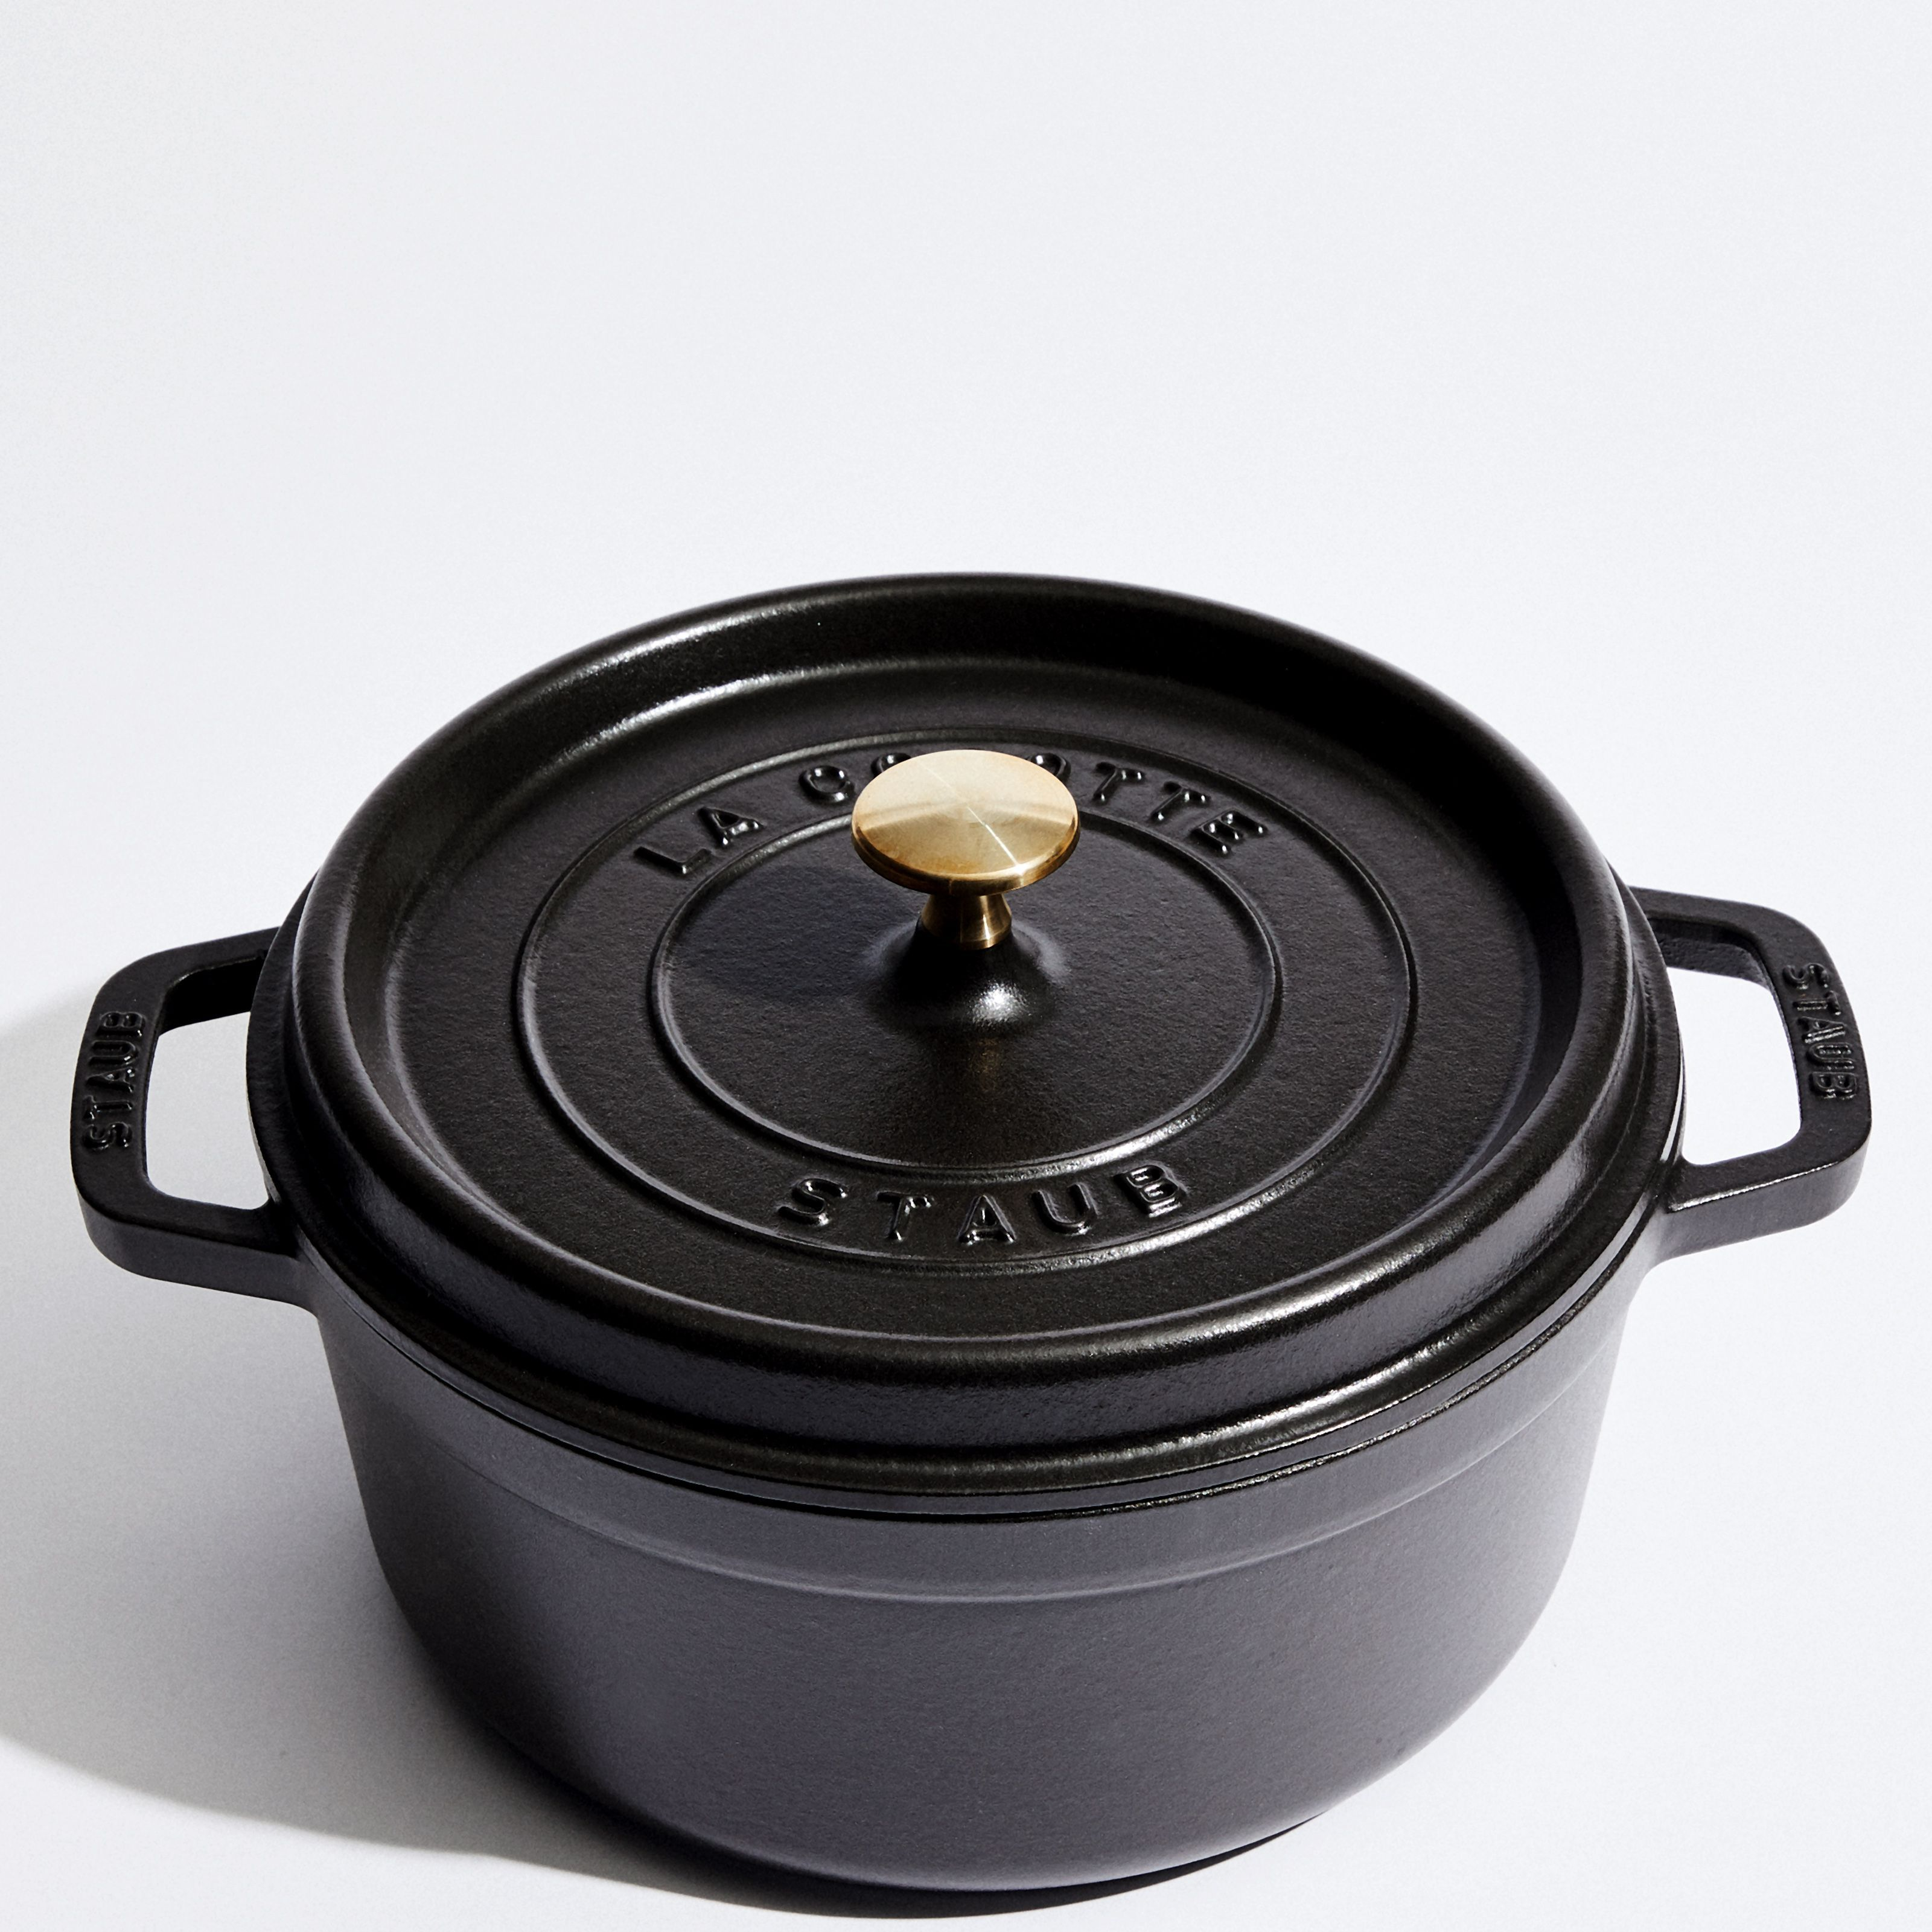 Staub Cast Iron Dutch Oven Review For Cooking